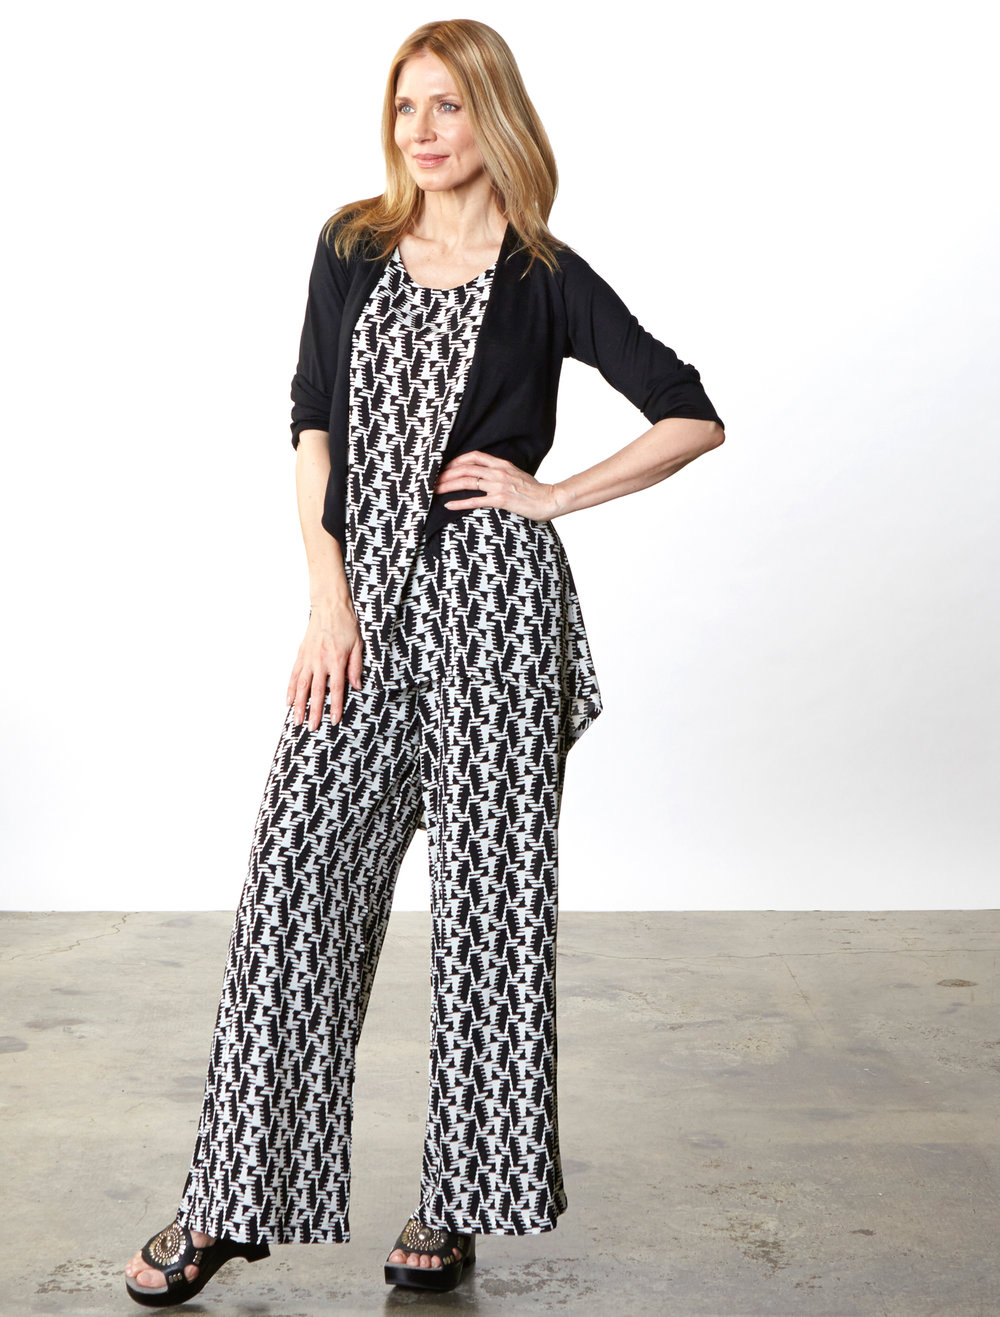 Tre Cardigan in Black Italian Cotton/Cashmere , Luis Tunic, Long Full Pant in Black/Cream Italian Polyester